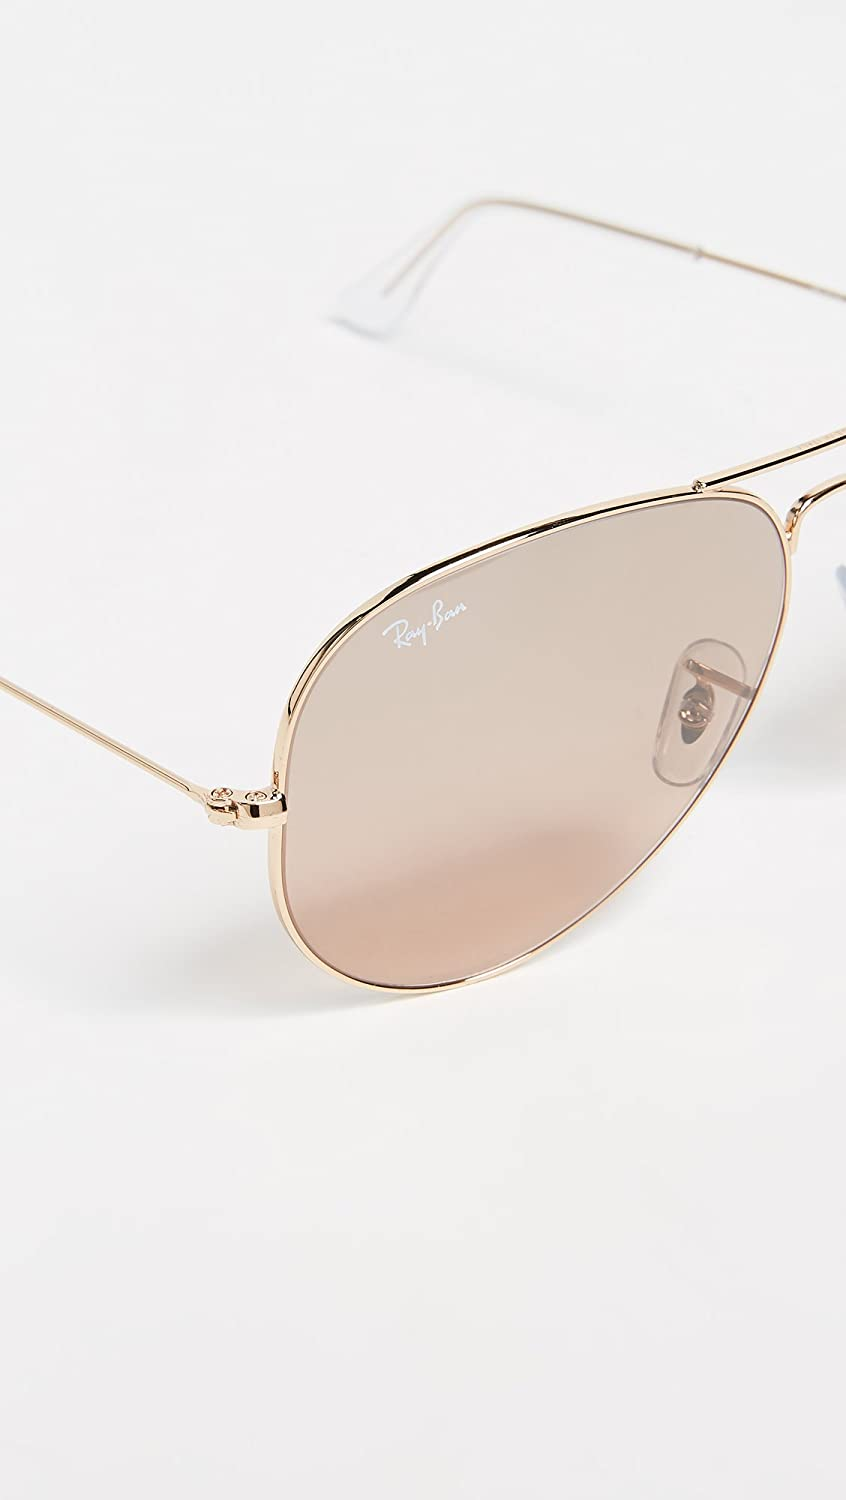 Amazon.com: Ray-Ban 3025 Aviator - Gafas de sol (metal ...